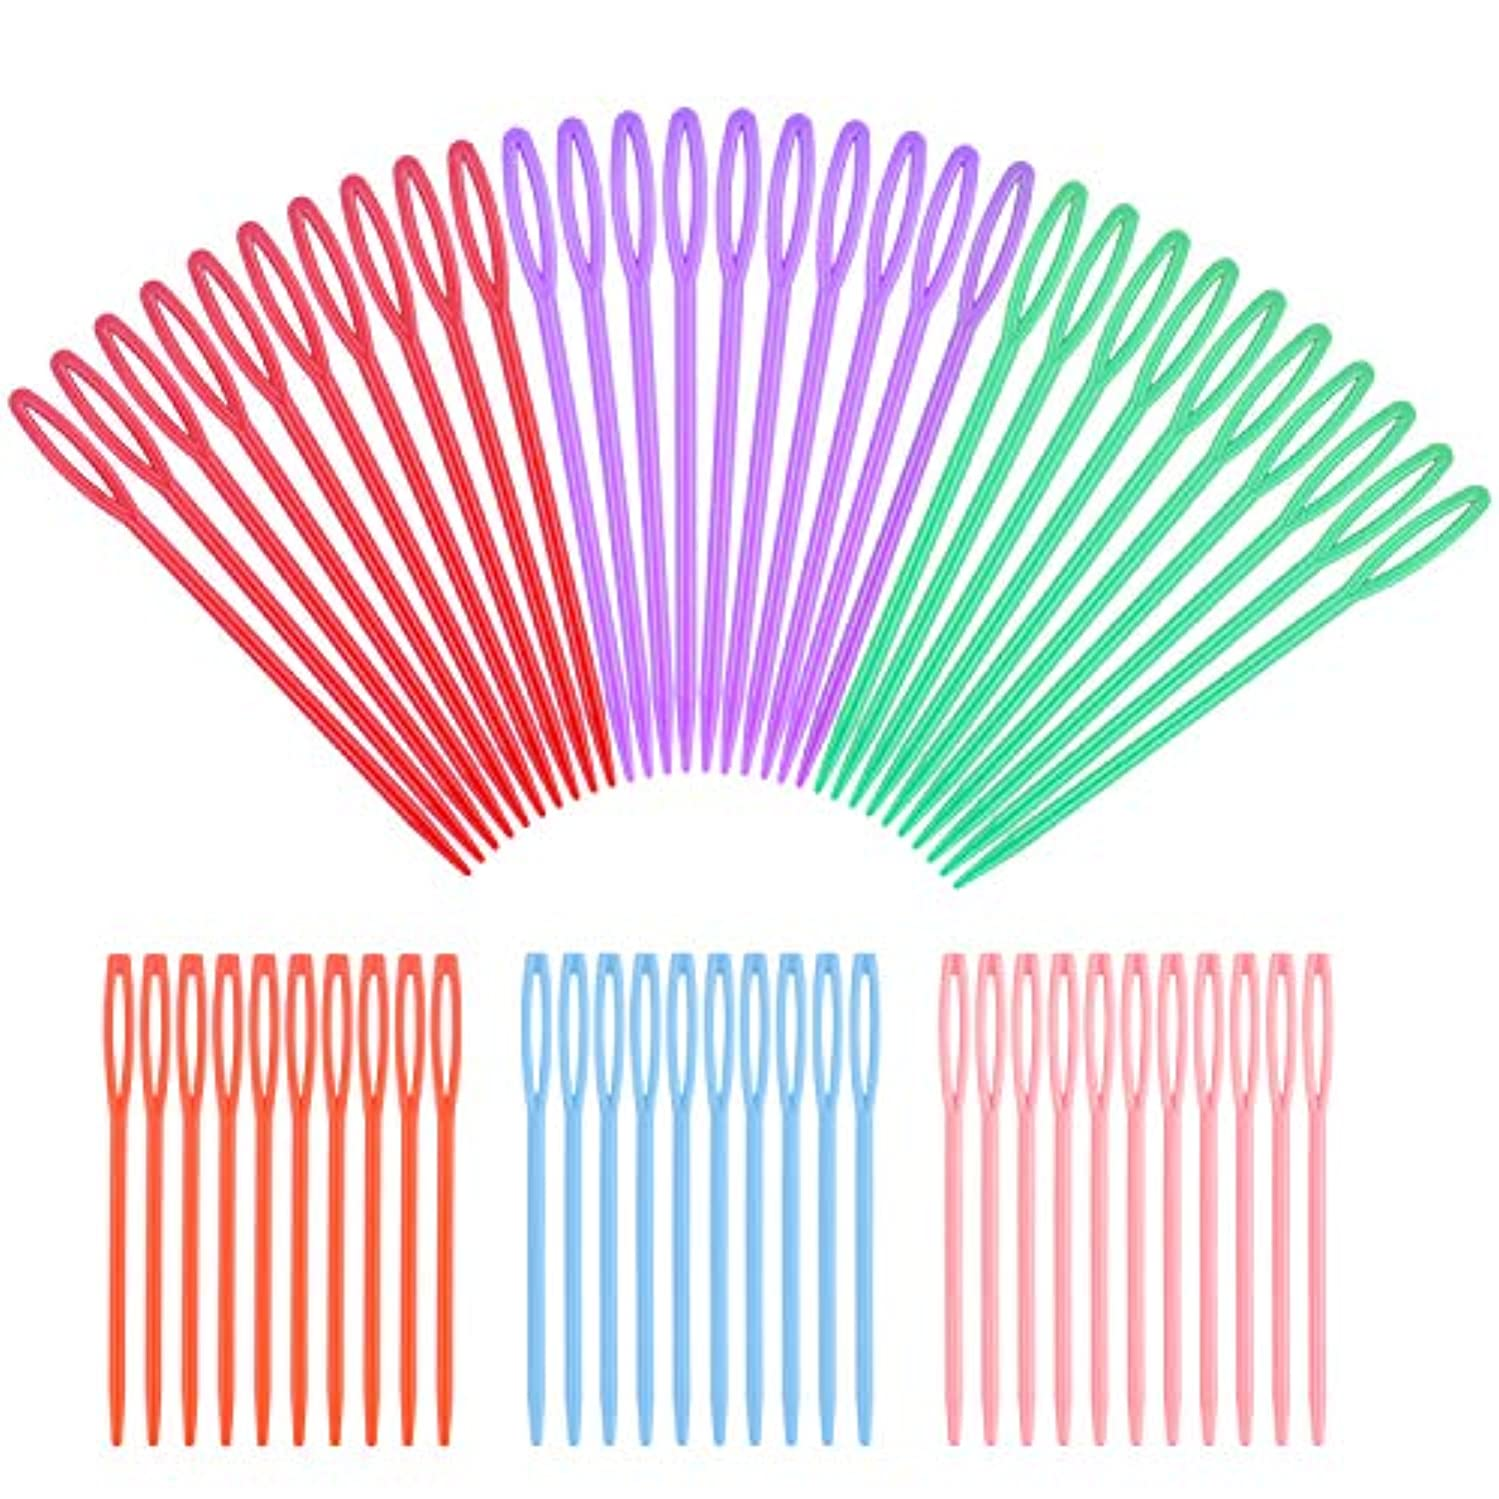 60pcs Colorful Large Eye Plastic Sewing Needles for Kid Weave Education